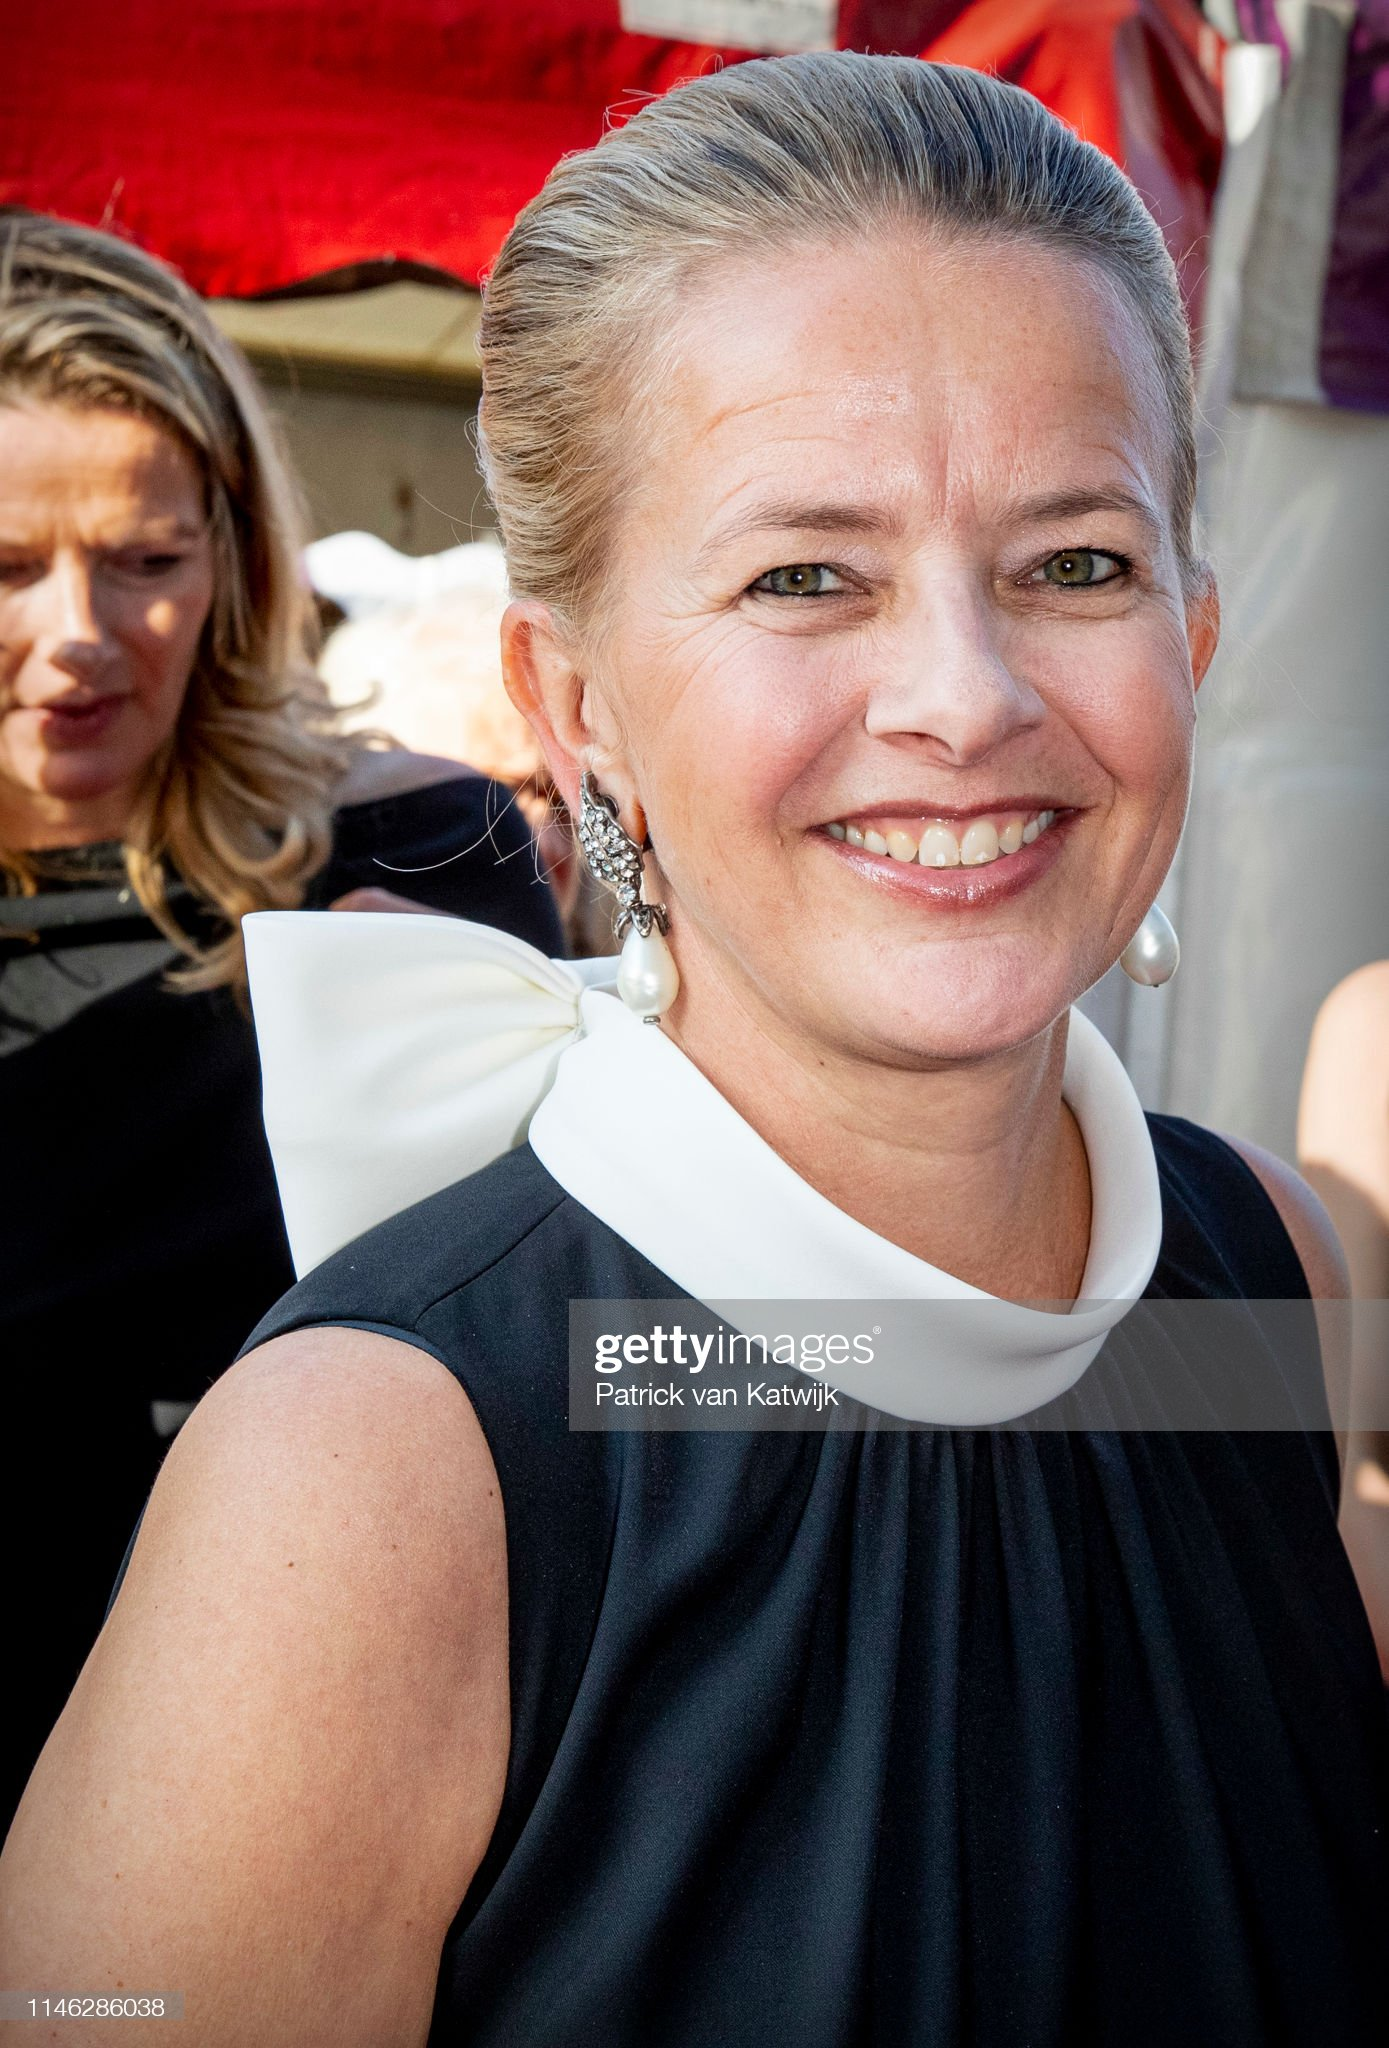 Princess Mabel Of The Netherlands Attends The Amsterdam Dinner : News Photo